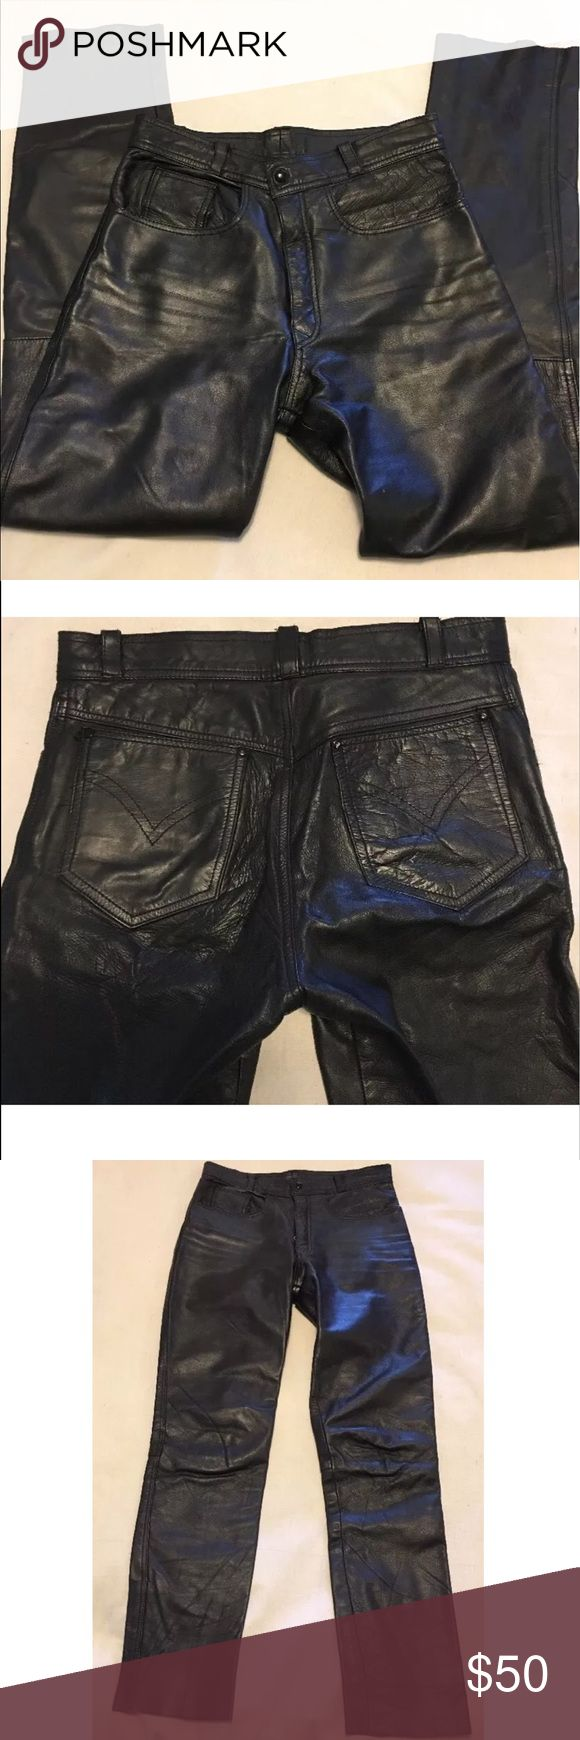 Motorcycle riding leather pants size 31 post women s motorcycle riding leather pants size 31 black